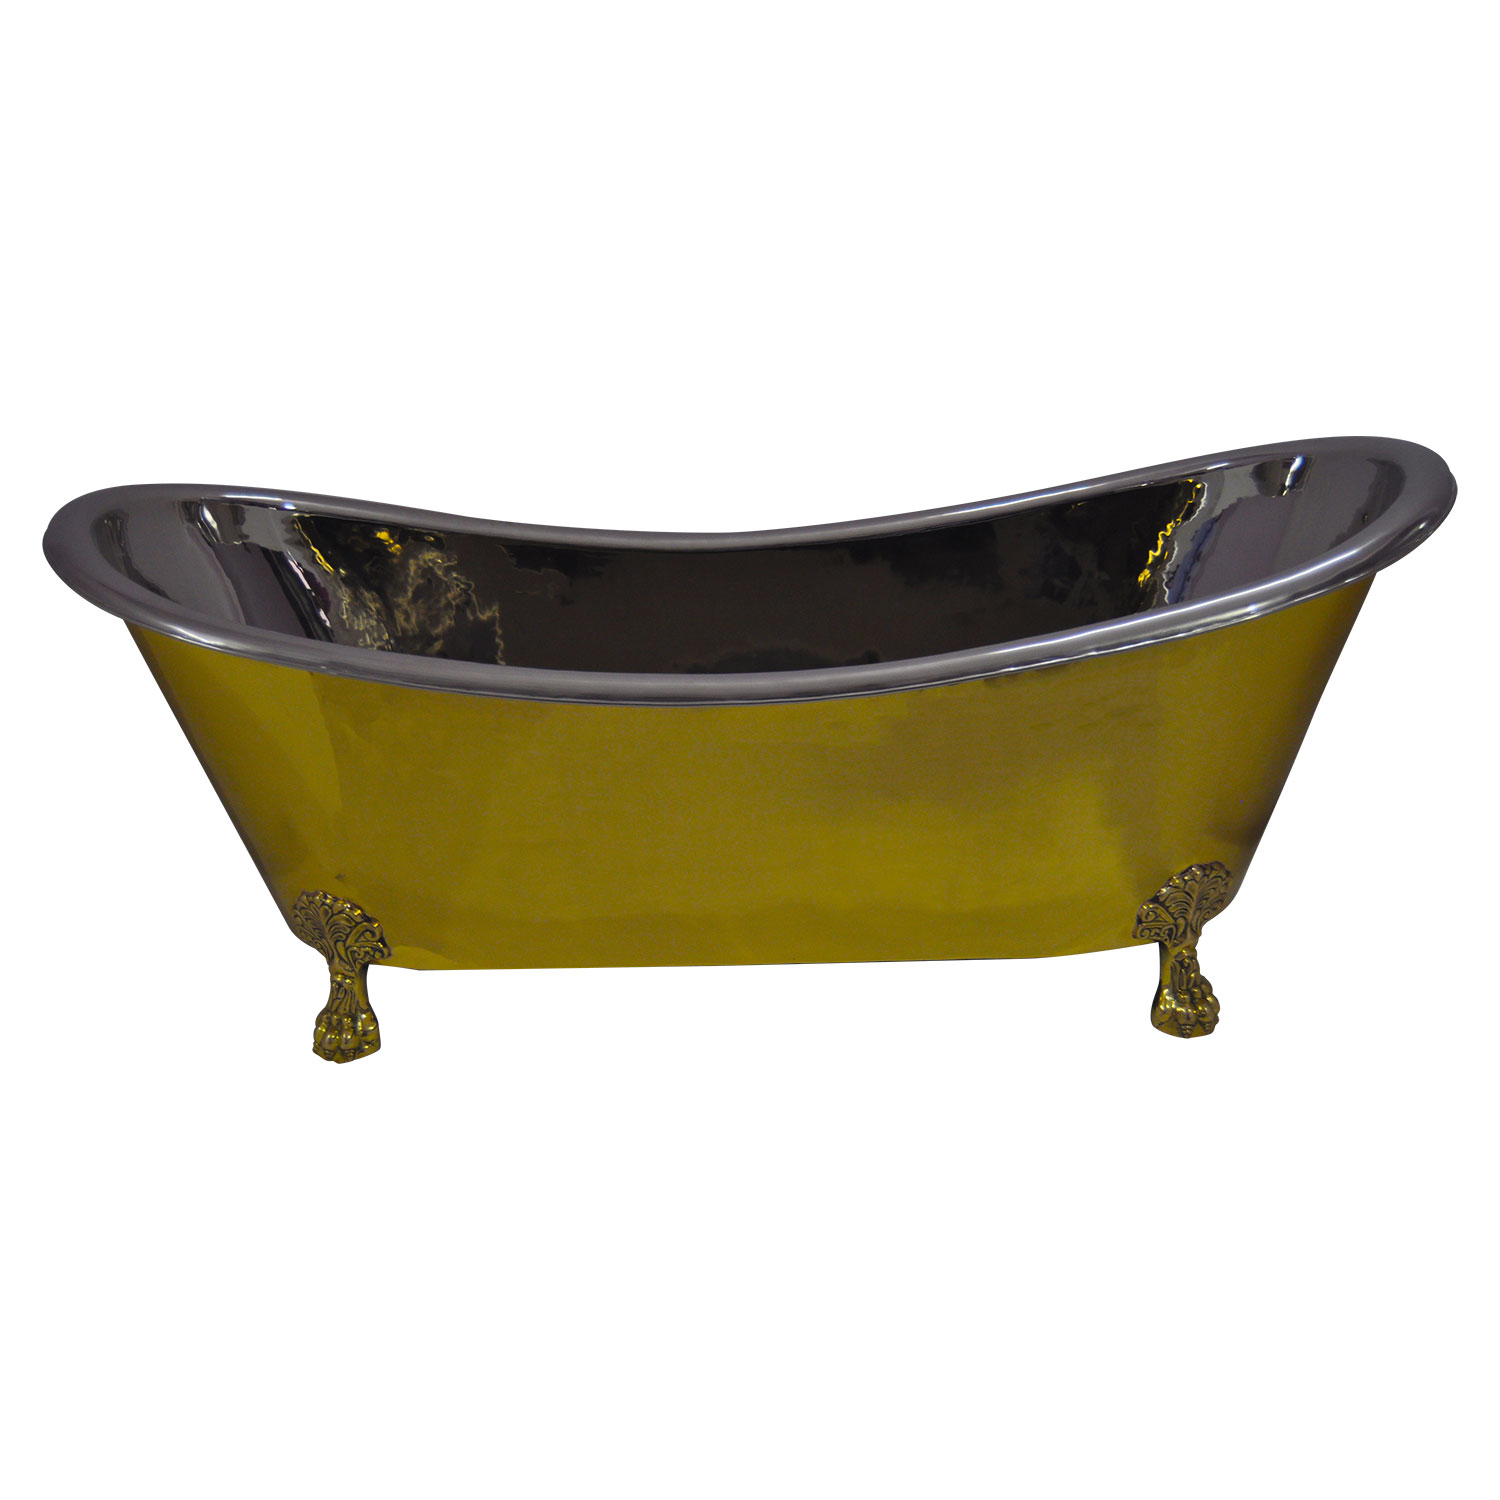 Clawfoot Brass Bathtub Nickel Interior, Size(mm): 1828.80 x 812.80 x 736.60